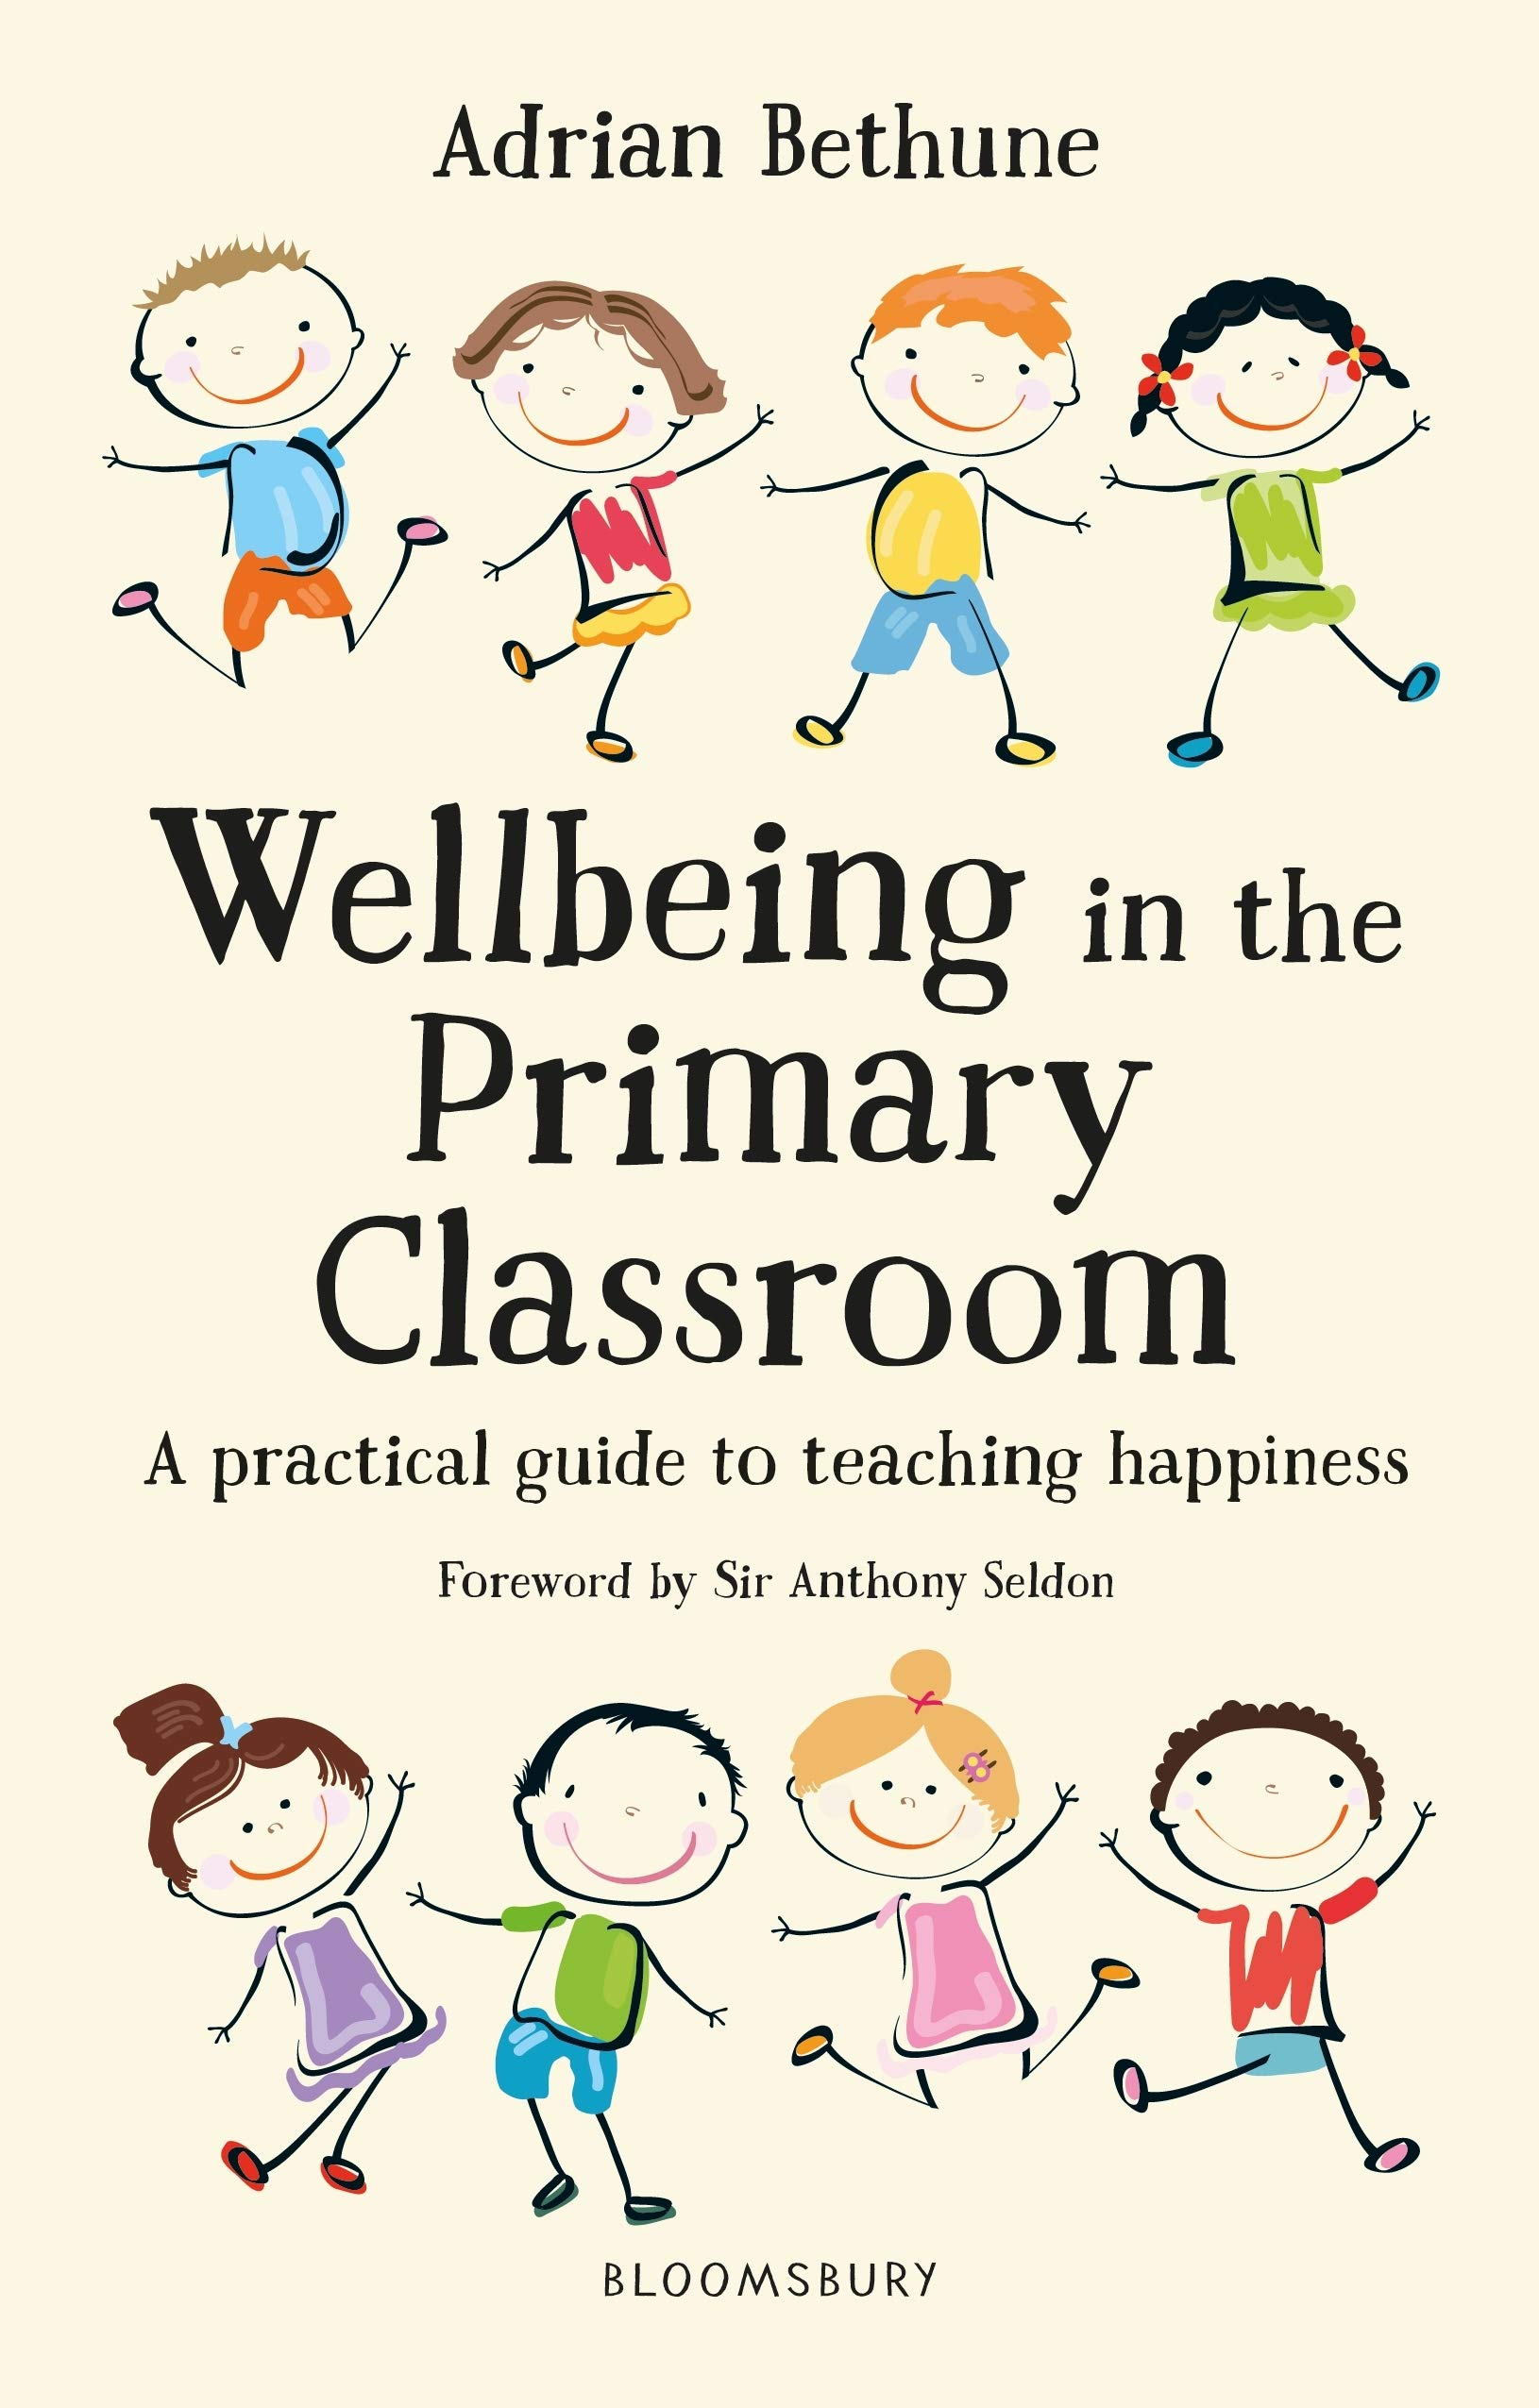 Wellbeing in the Primary classroom thumbnail